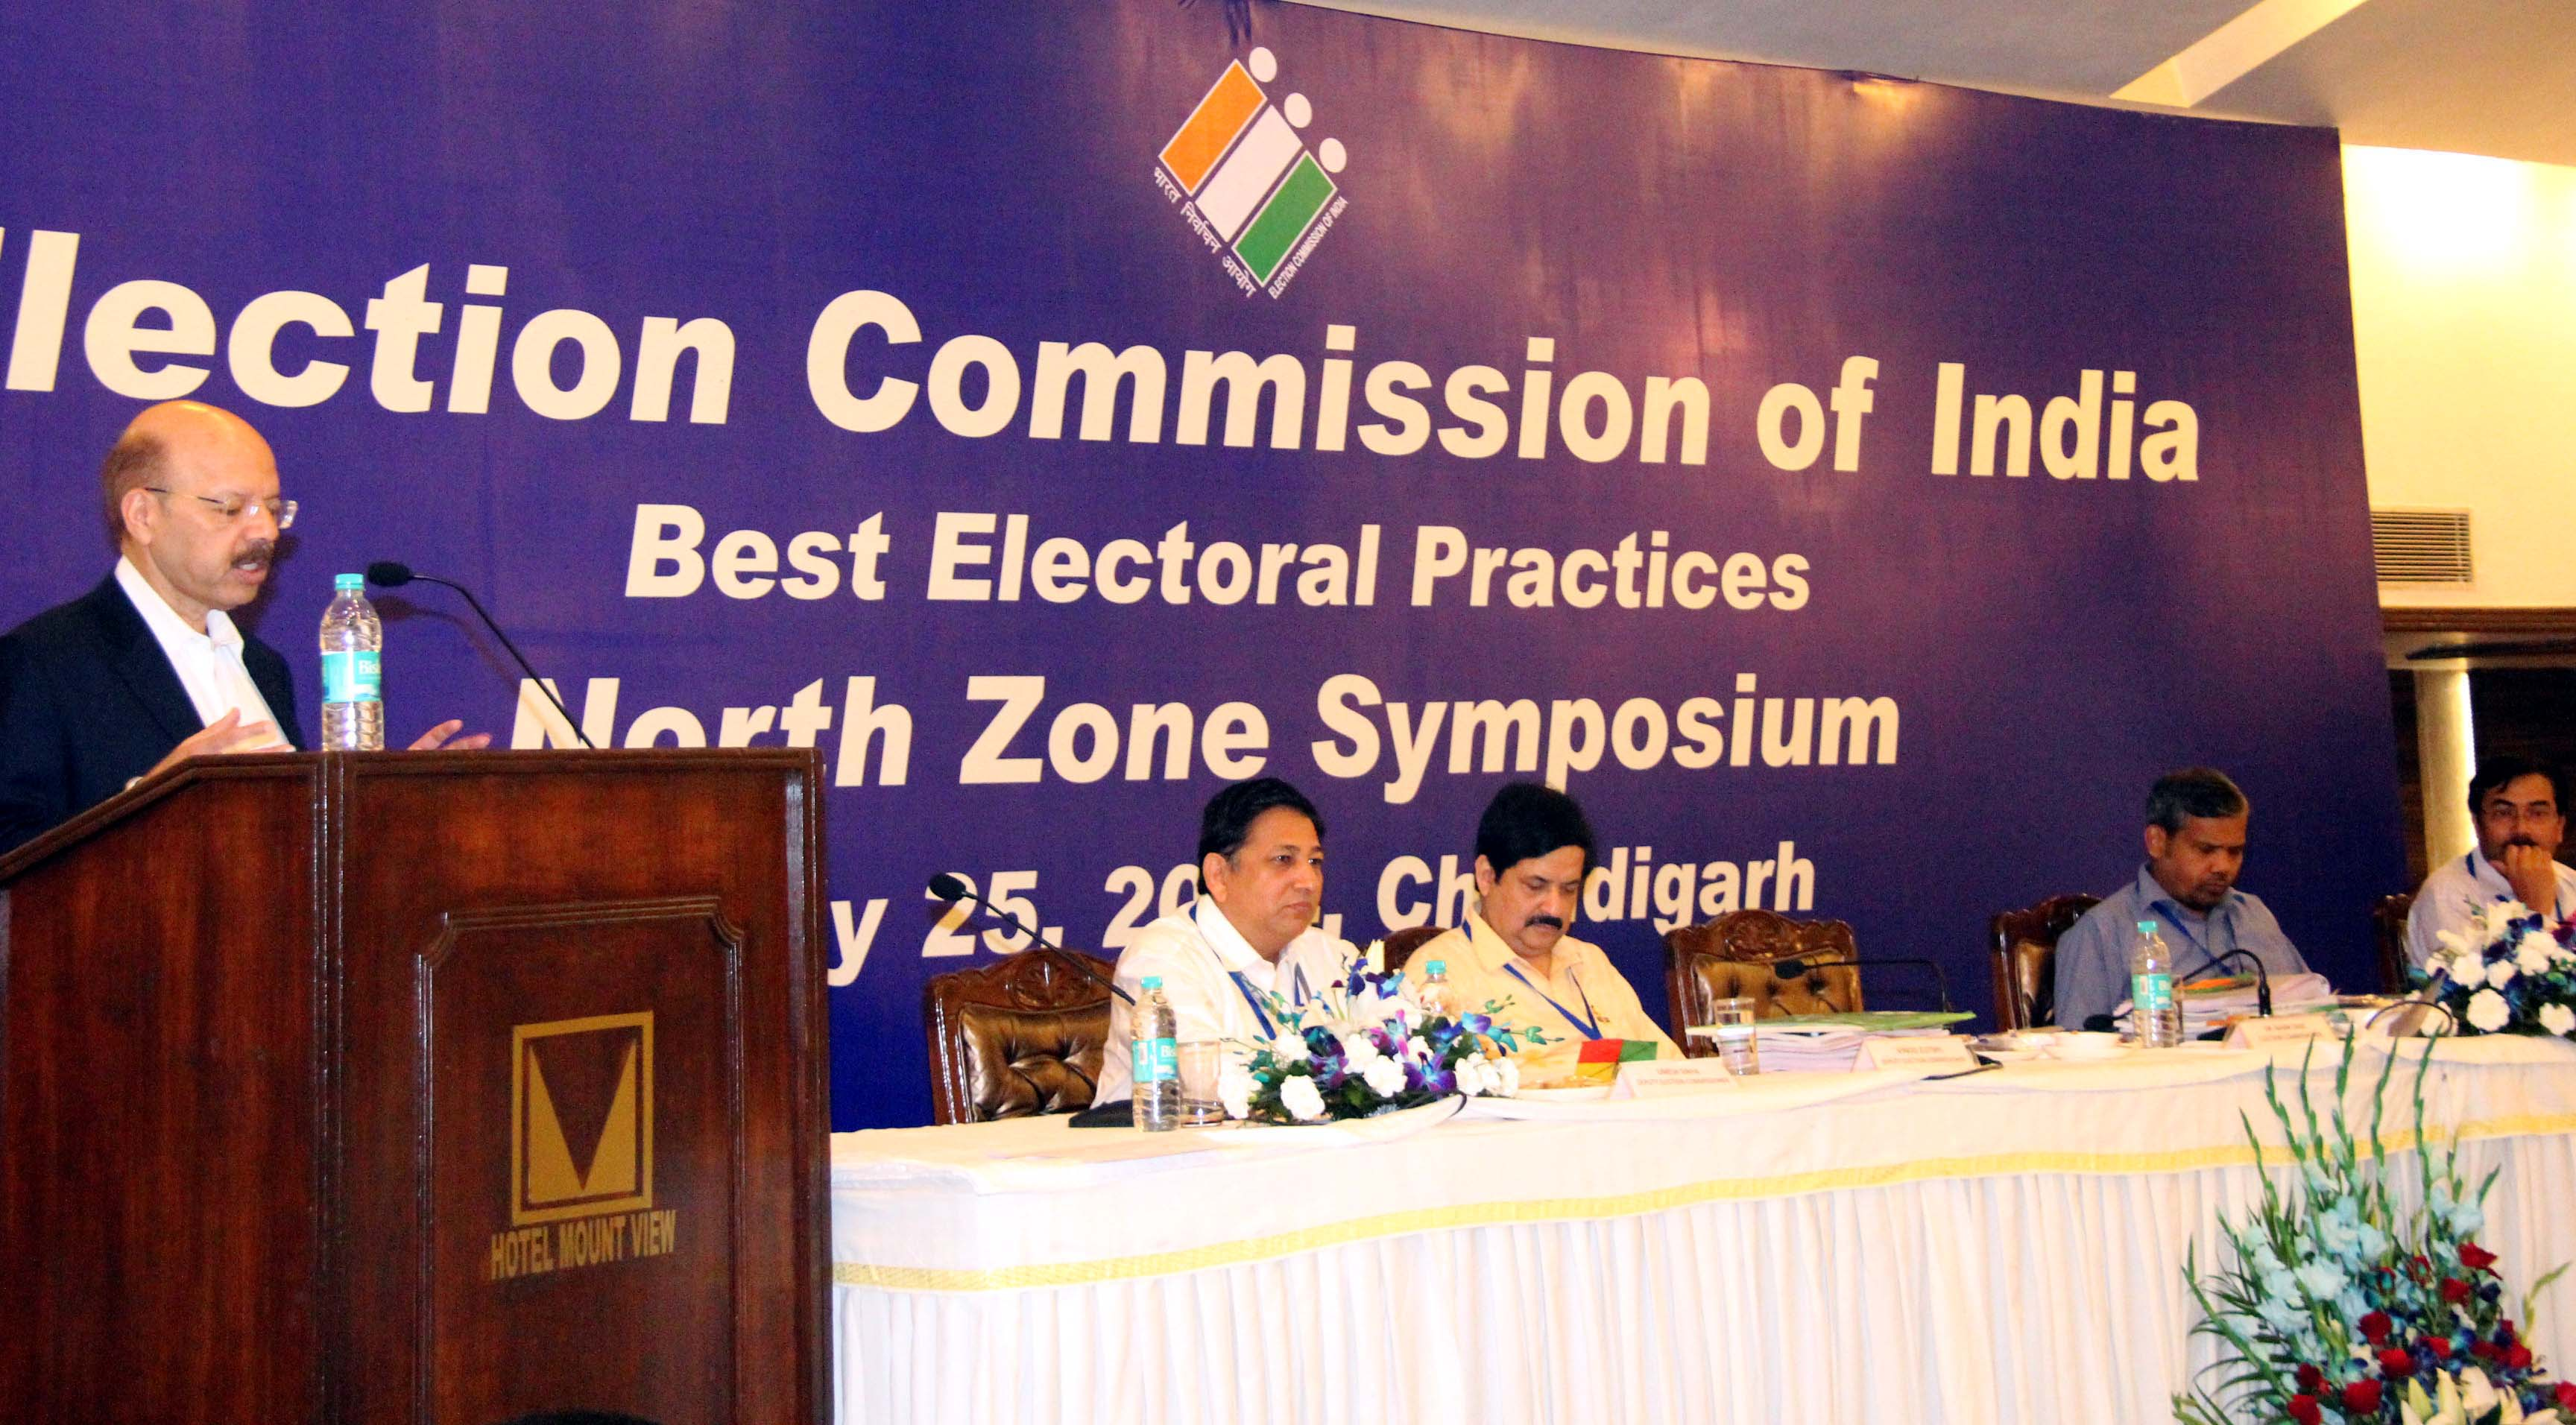 Hon�ble Dr. Nasim Zaidi , Election Commissioner of India presiding over the Election Commission of India best electoral practices North Zone Symposium at Hotel Mountview, Sector-10, Chandigarh on Friday, July 25, 2014.